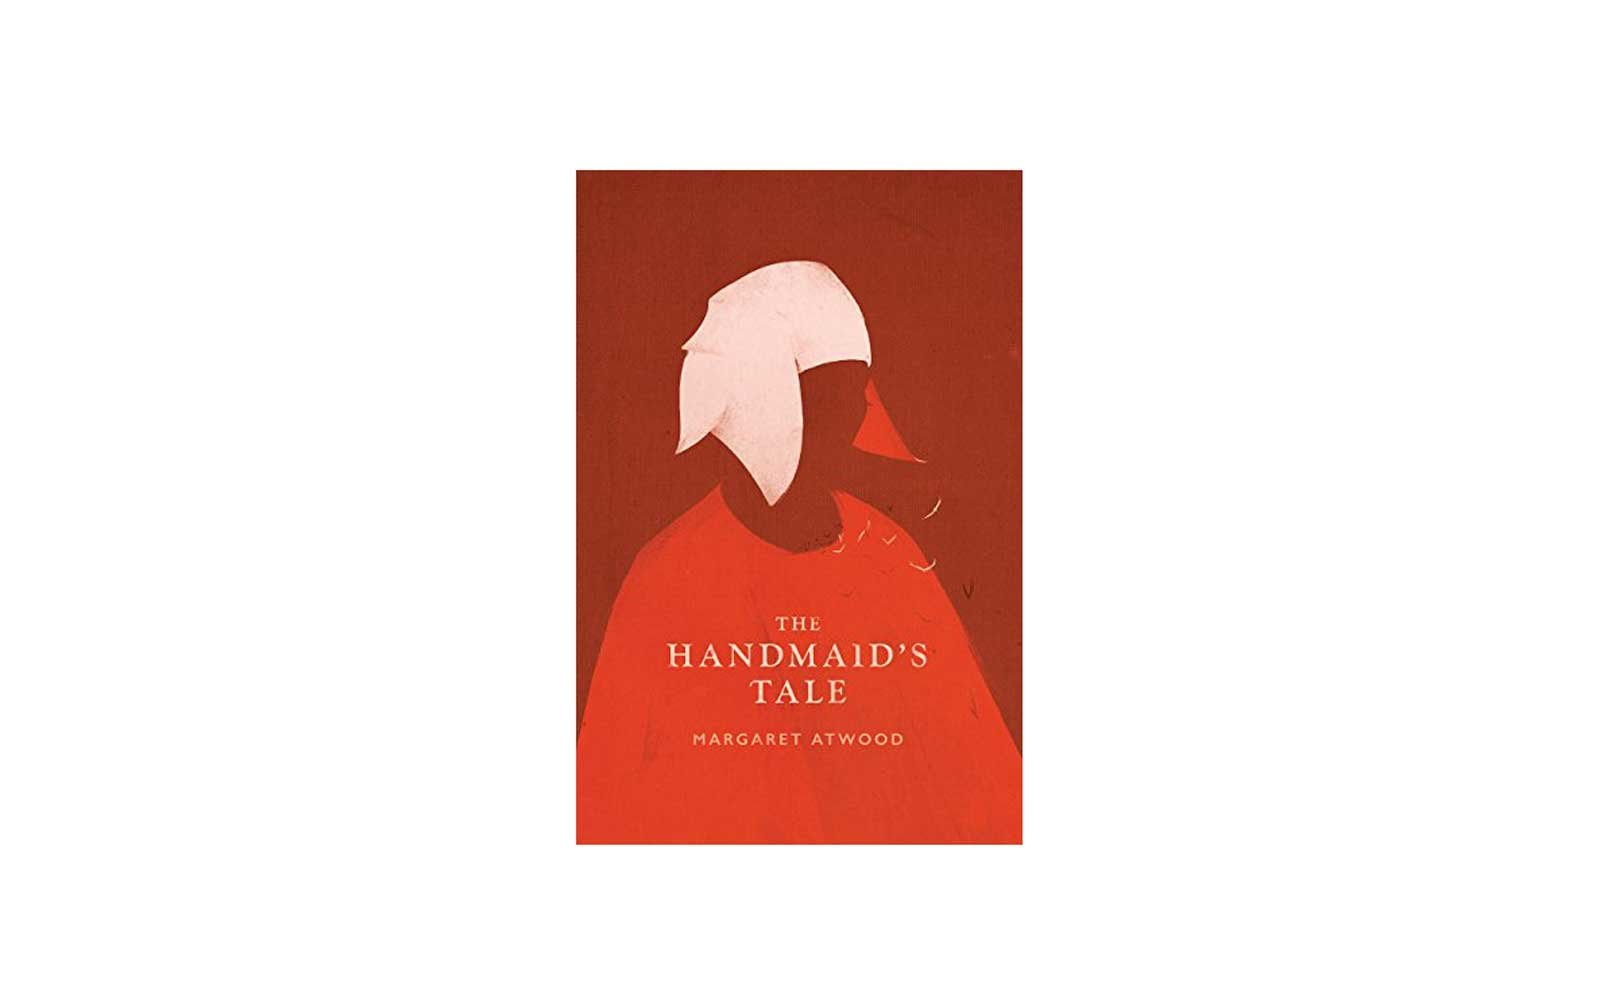 20 most popular Kindle books 2017 The Handmaids Tale